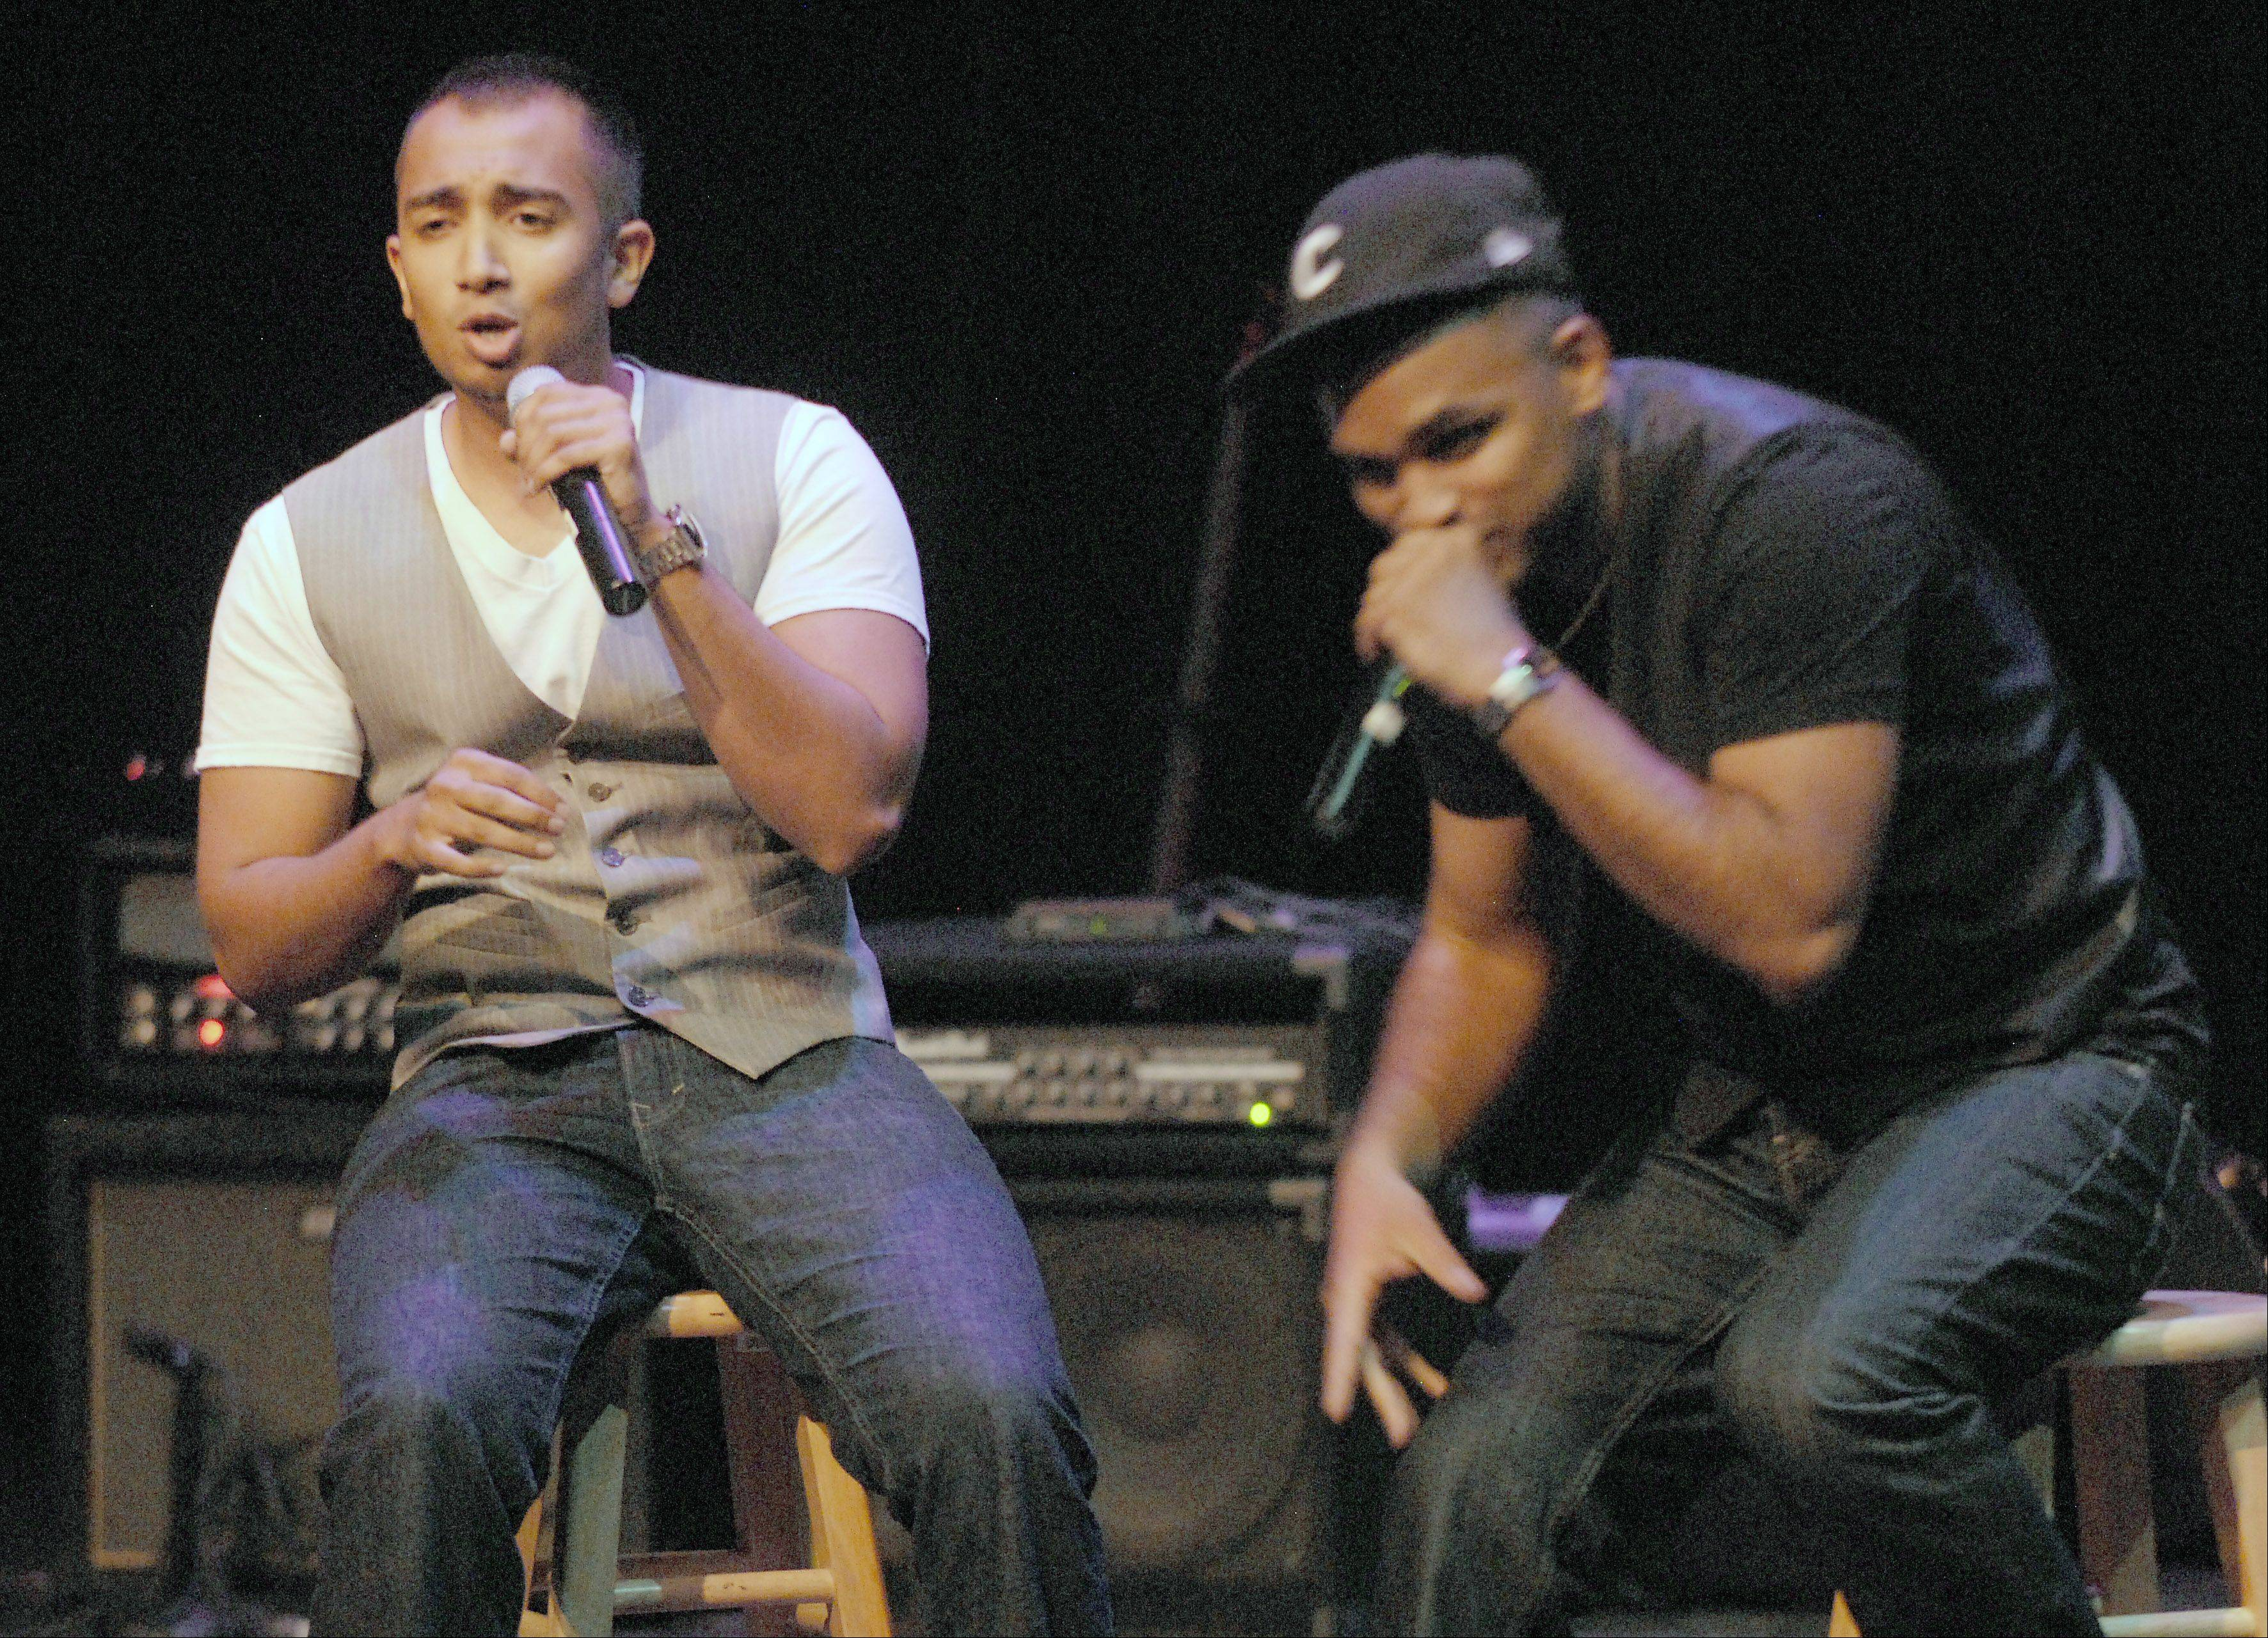 iLLest Vocals featuring Sanu John, 25, of Skokie and Shawn Kurian, 25, of Wheeling perform as one of the five finalists of Suburban Chicago's Got Talent for the judges and fans at the Metropolis Performing Arts Centre Sunday in Arlington Heights.